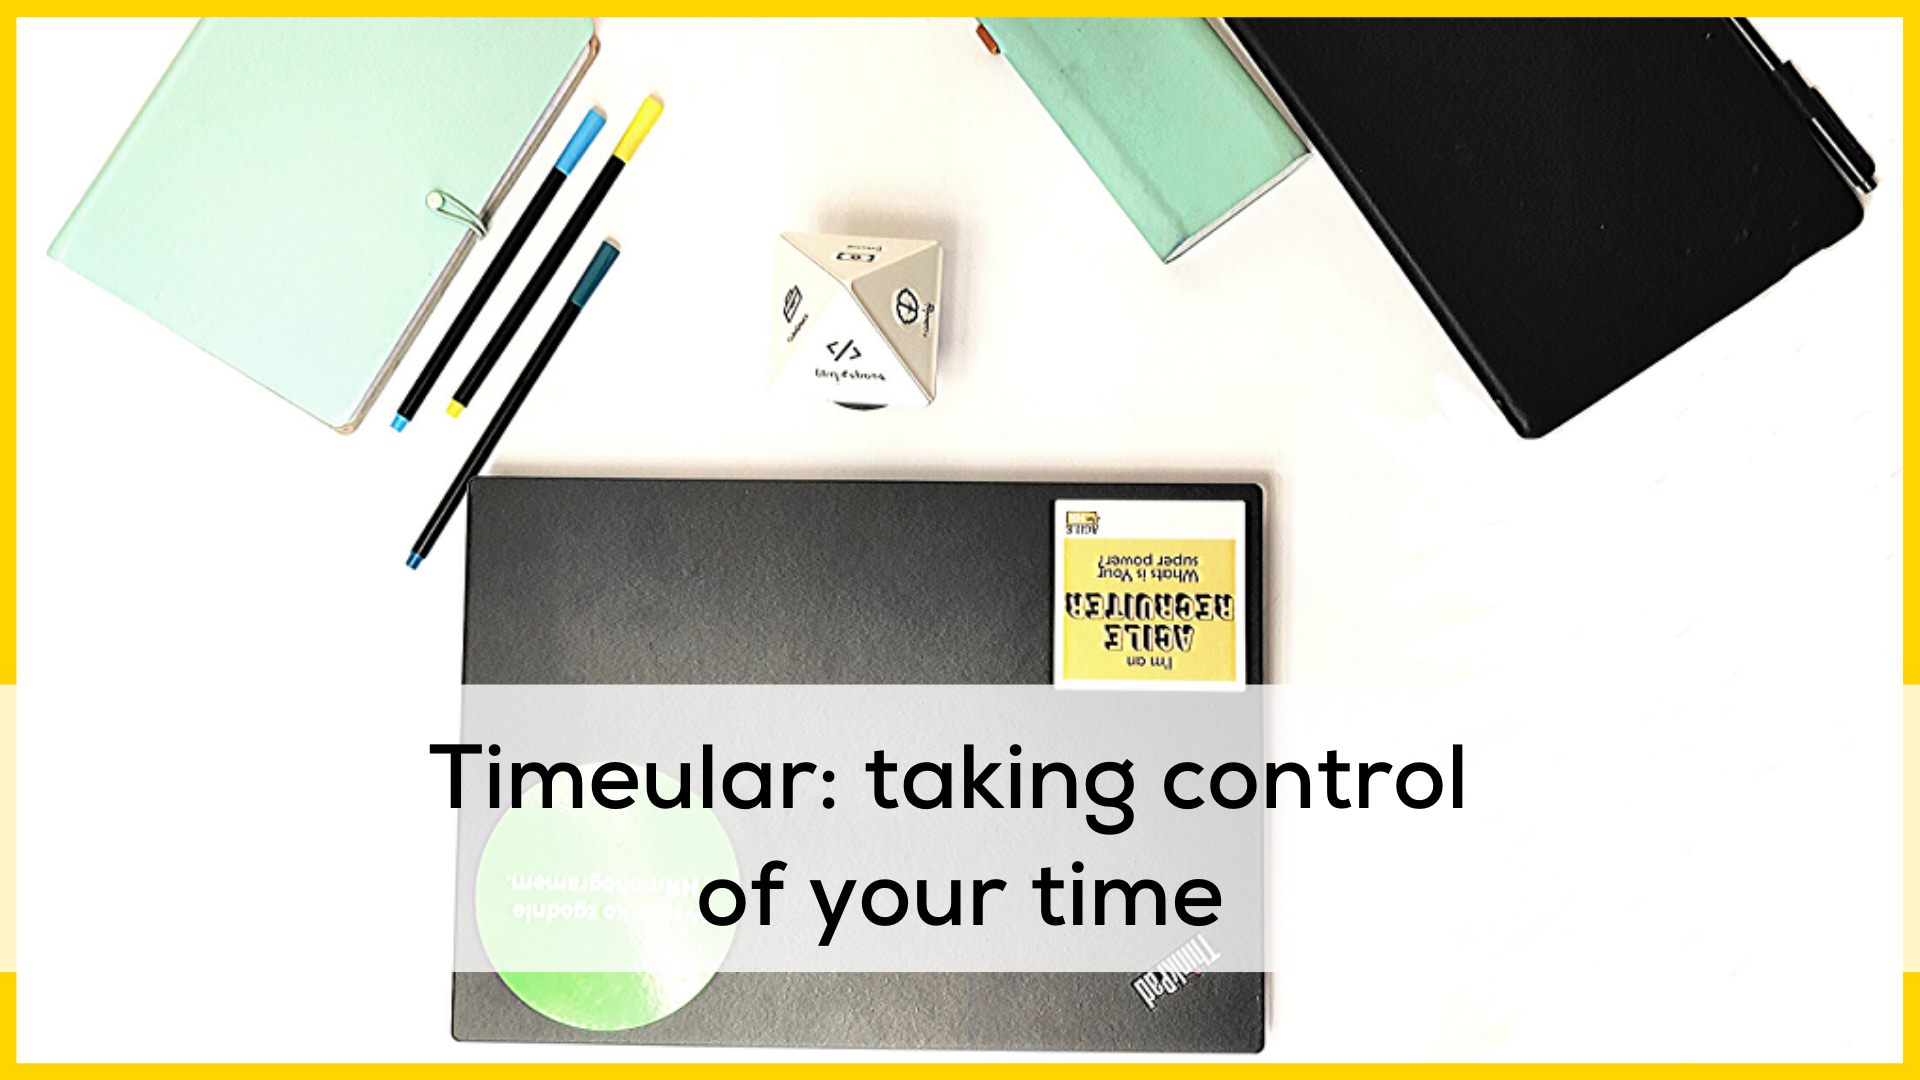 timeular | taking control of your time | time nmanagement | productivity management